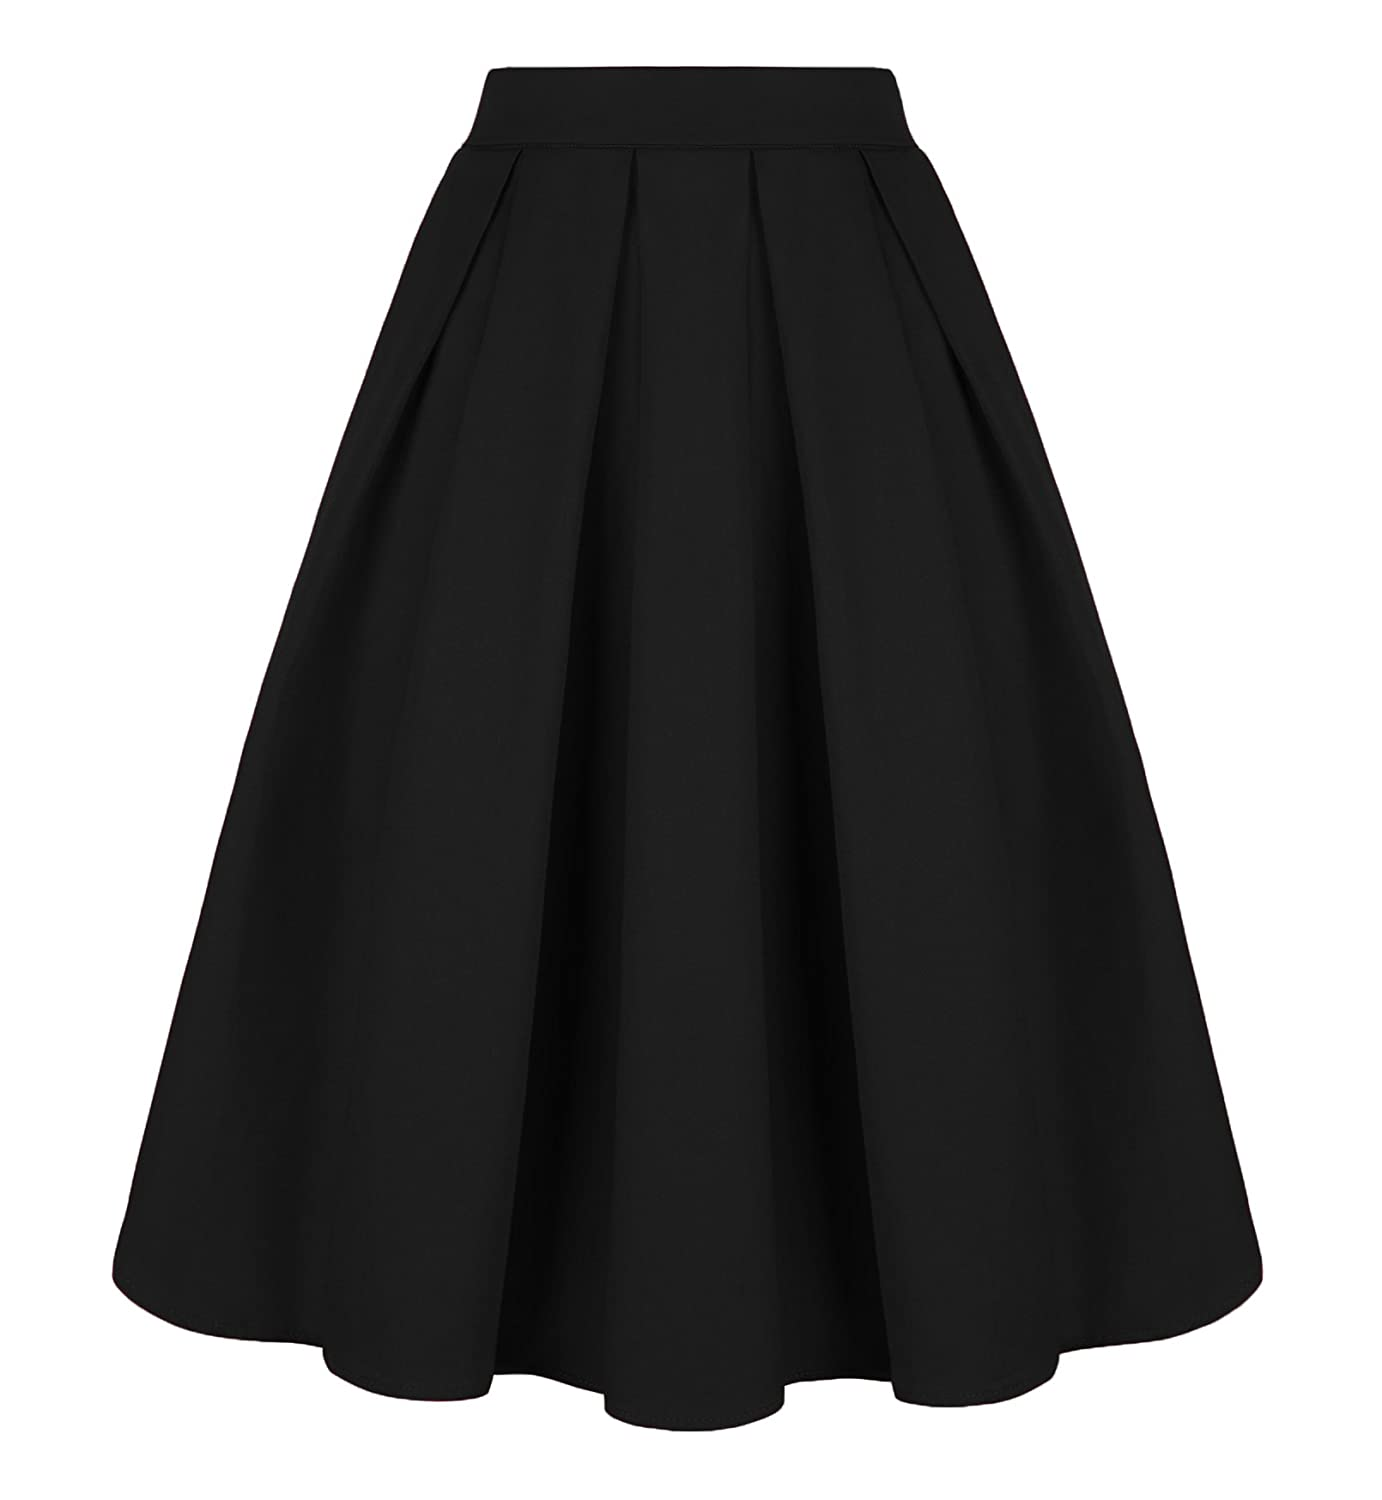 a7f0ce954df Tandisk Women s Vintage A-line Printed Pleated Flared Midi Skirts with  Pockets at Amazon Women s Clothing store